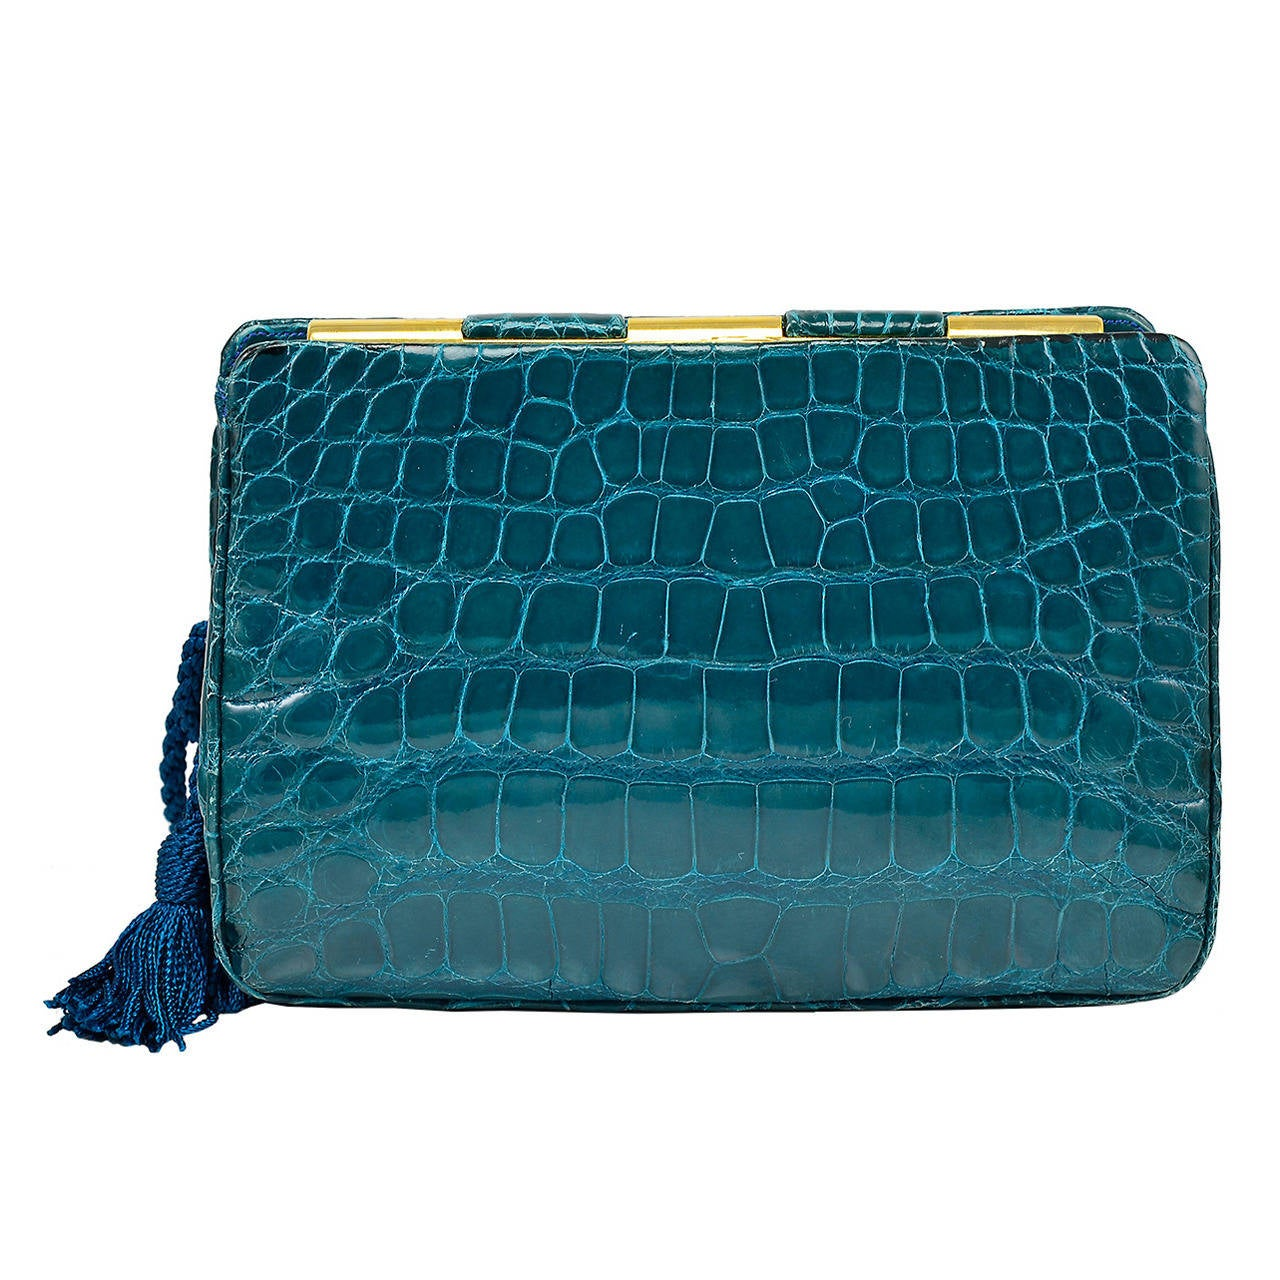 Gorgeous Judith Leiber Green Alligator Clutch Bag For Sale